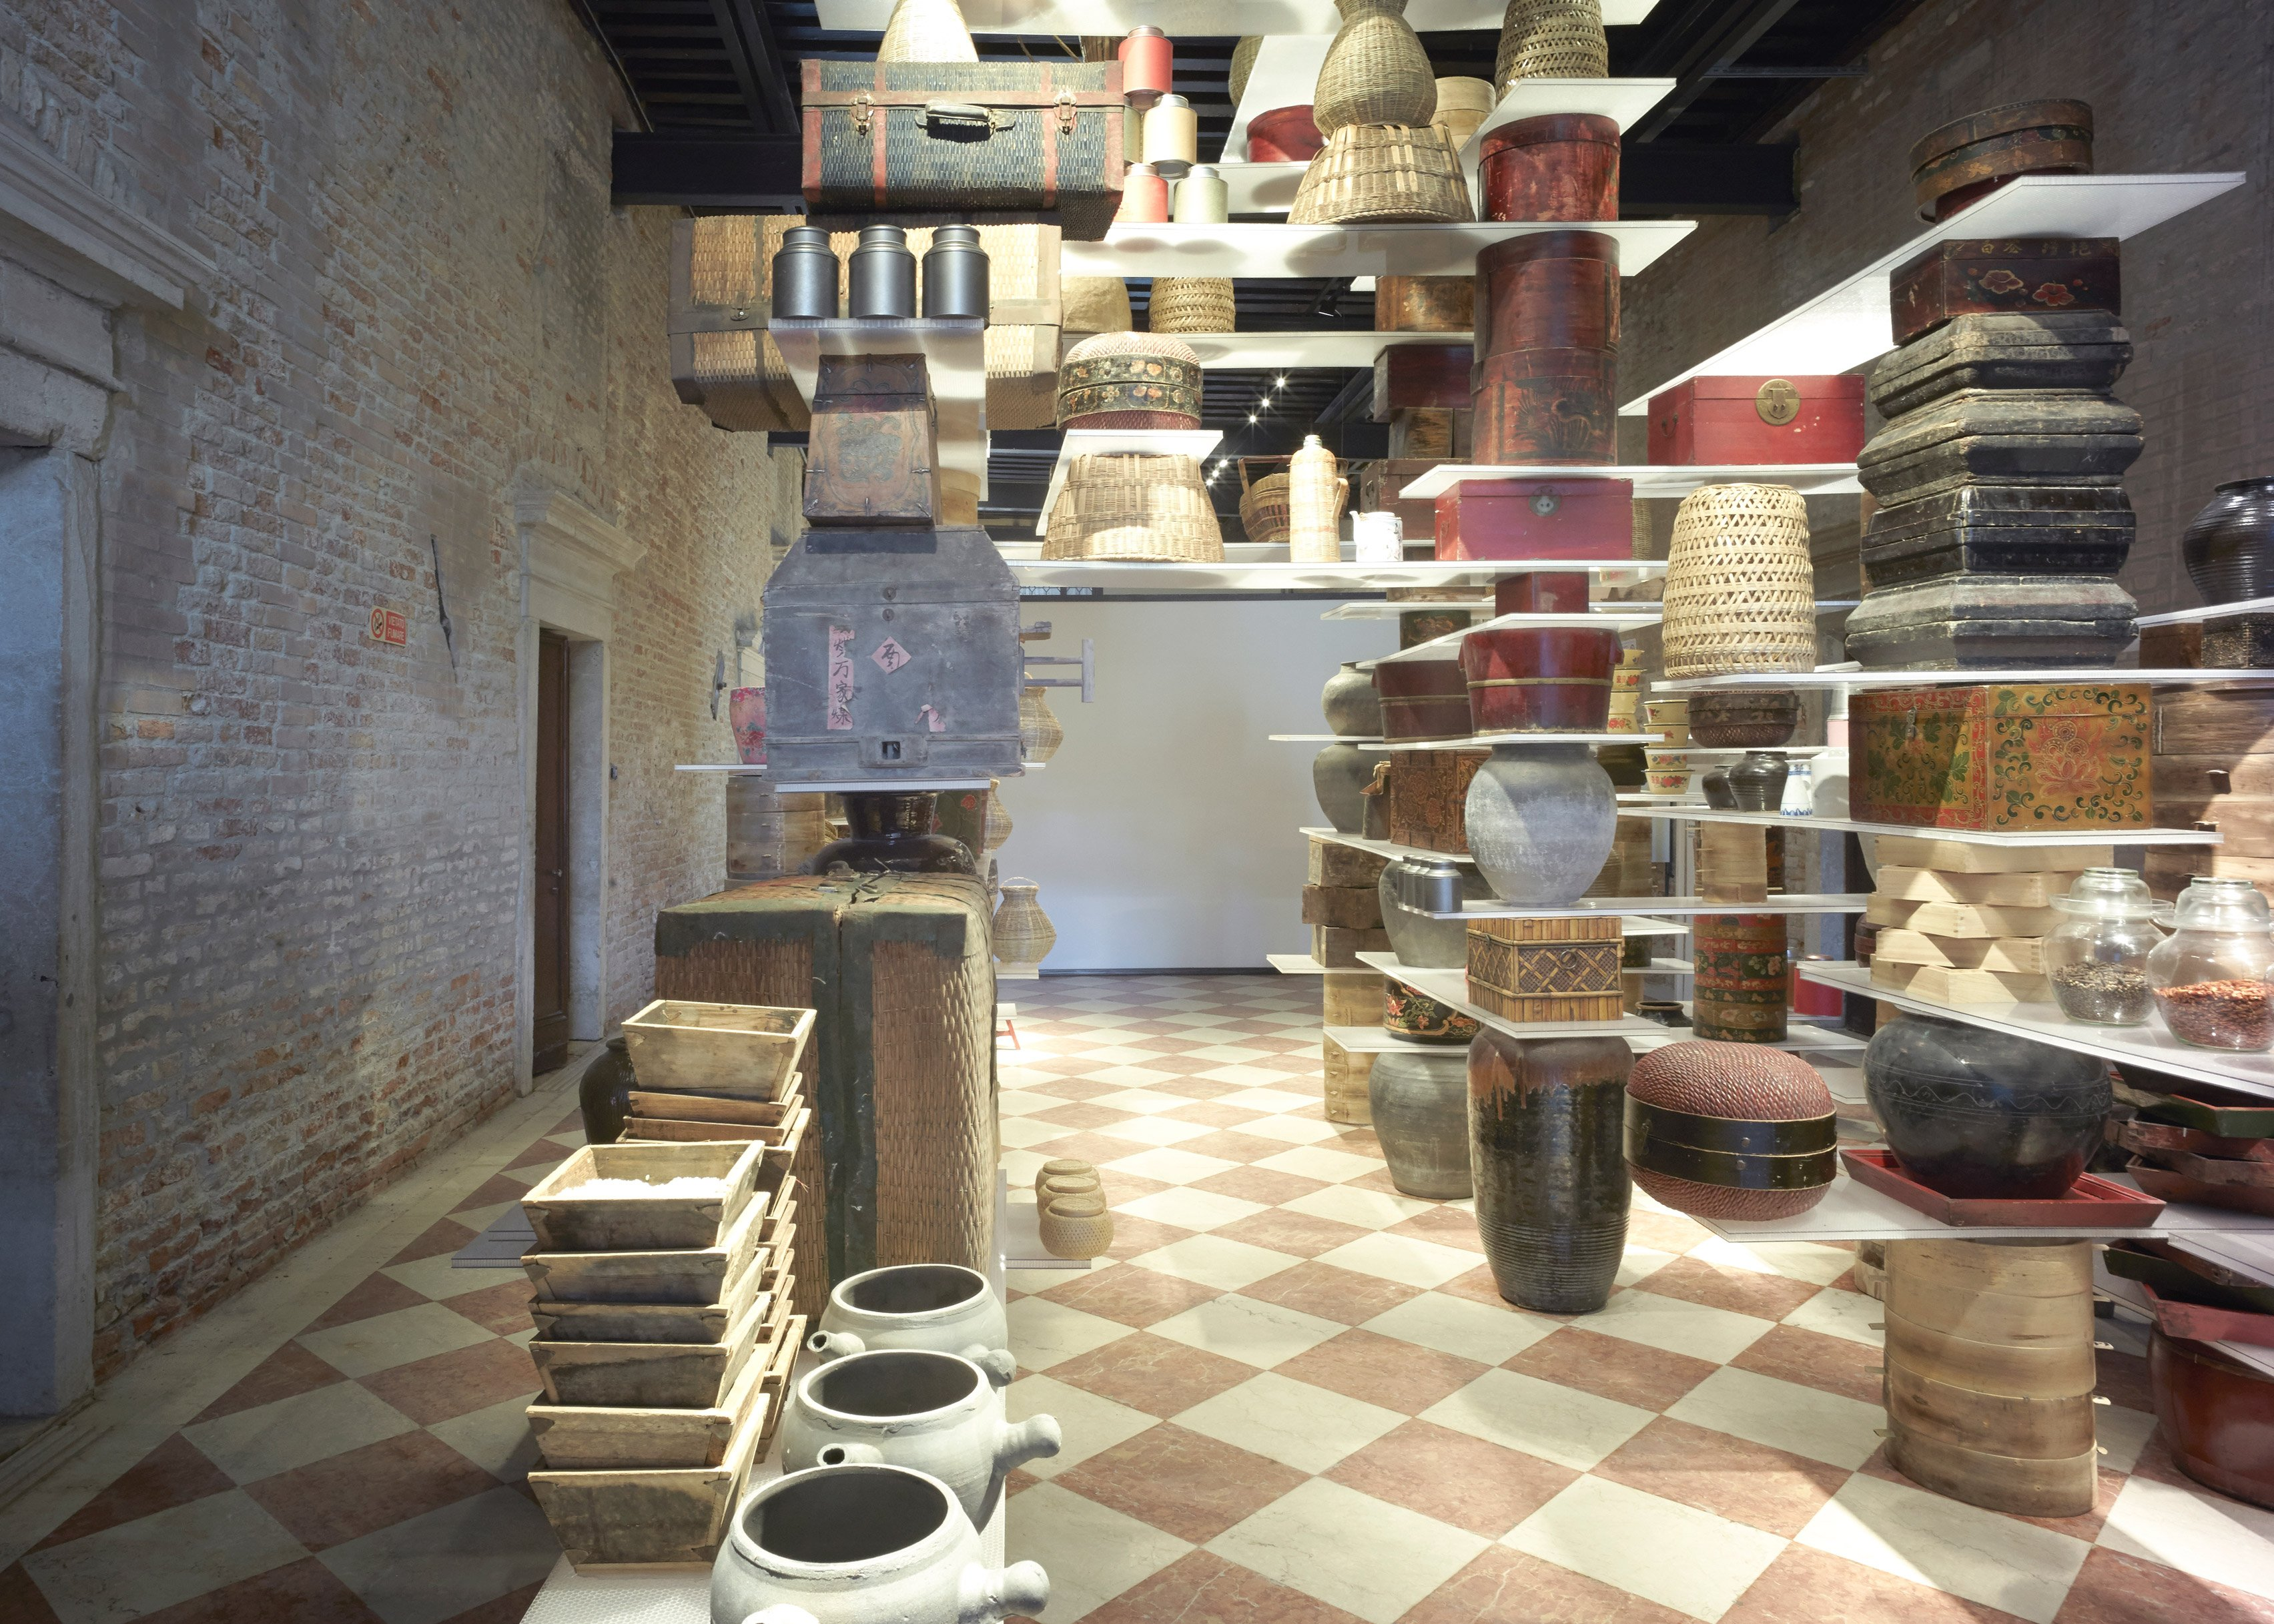 Kengo Kuma designs The Floating Kitchen for Venice Architecture Biennale 2016